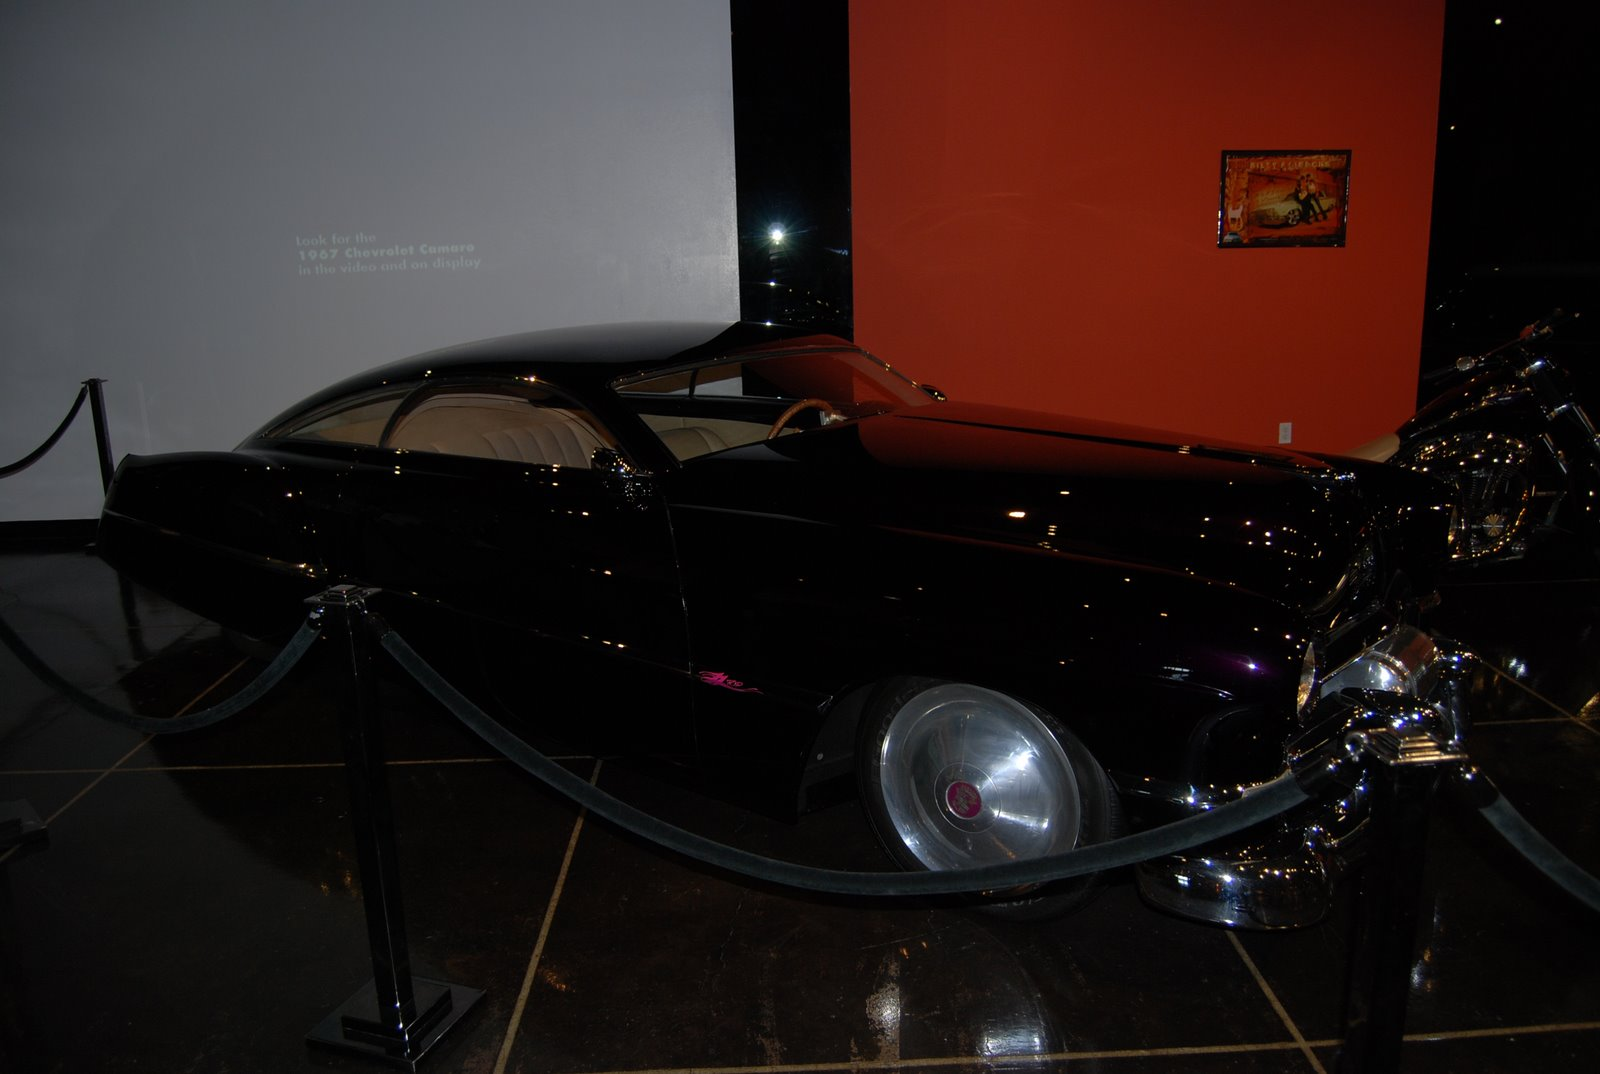 Boyd coddington duane mayer west coast